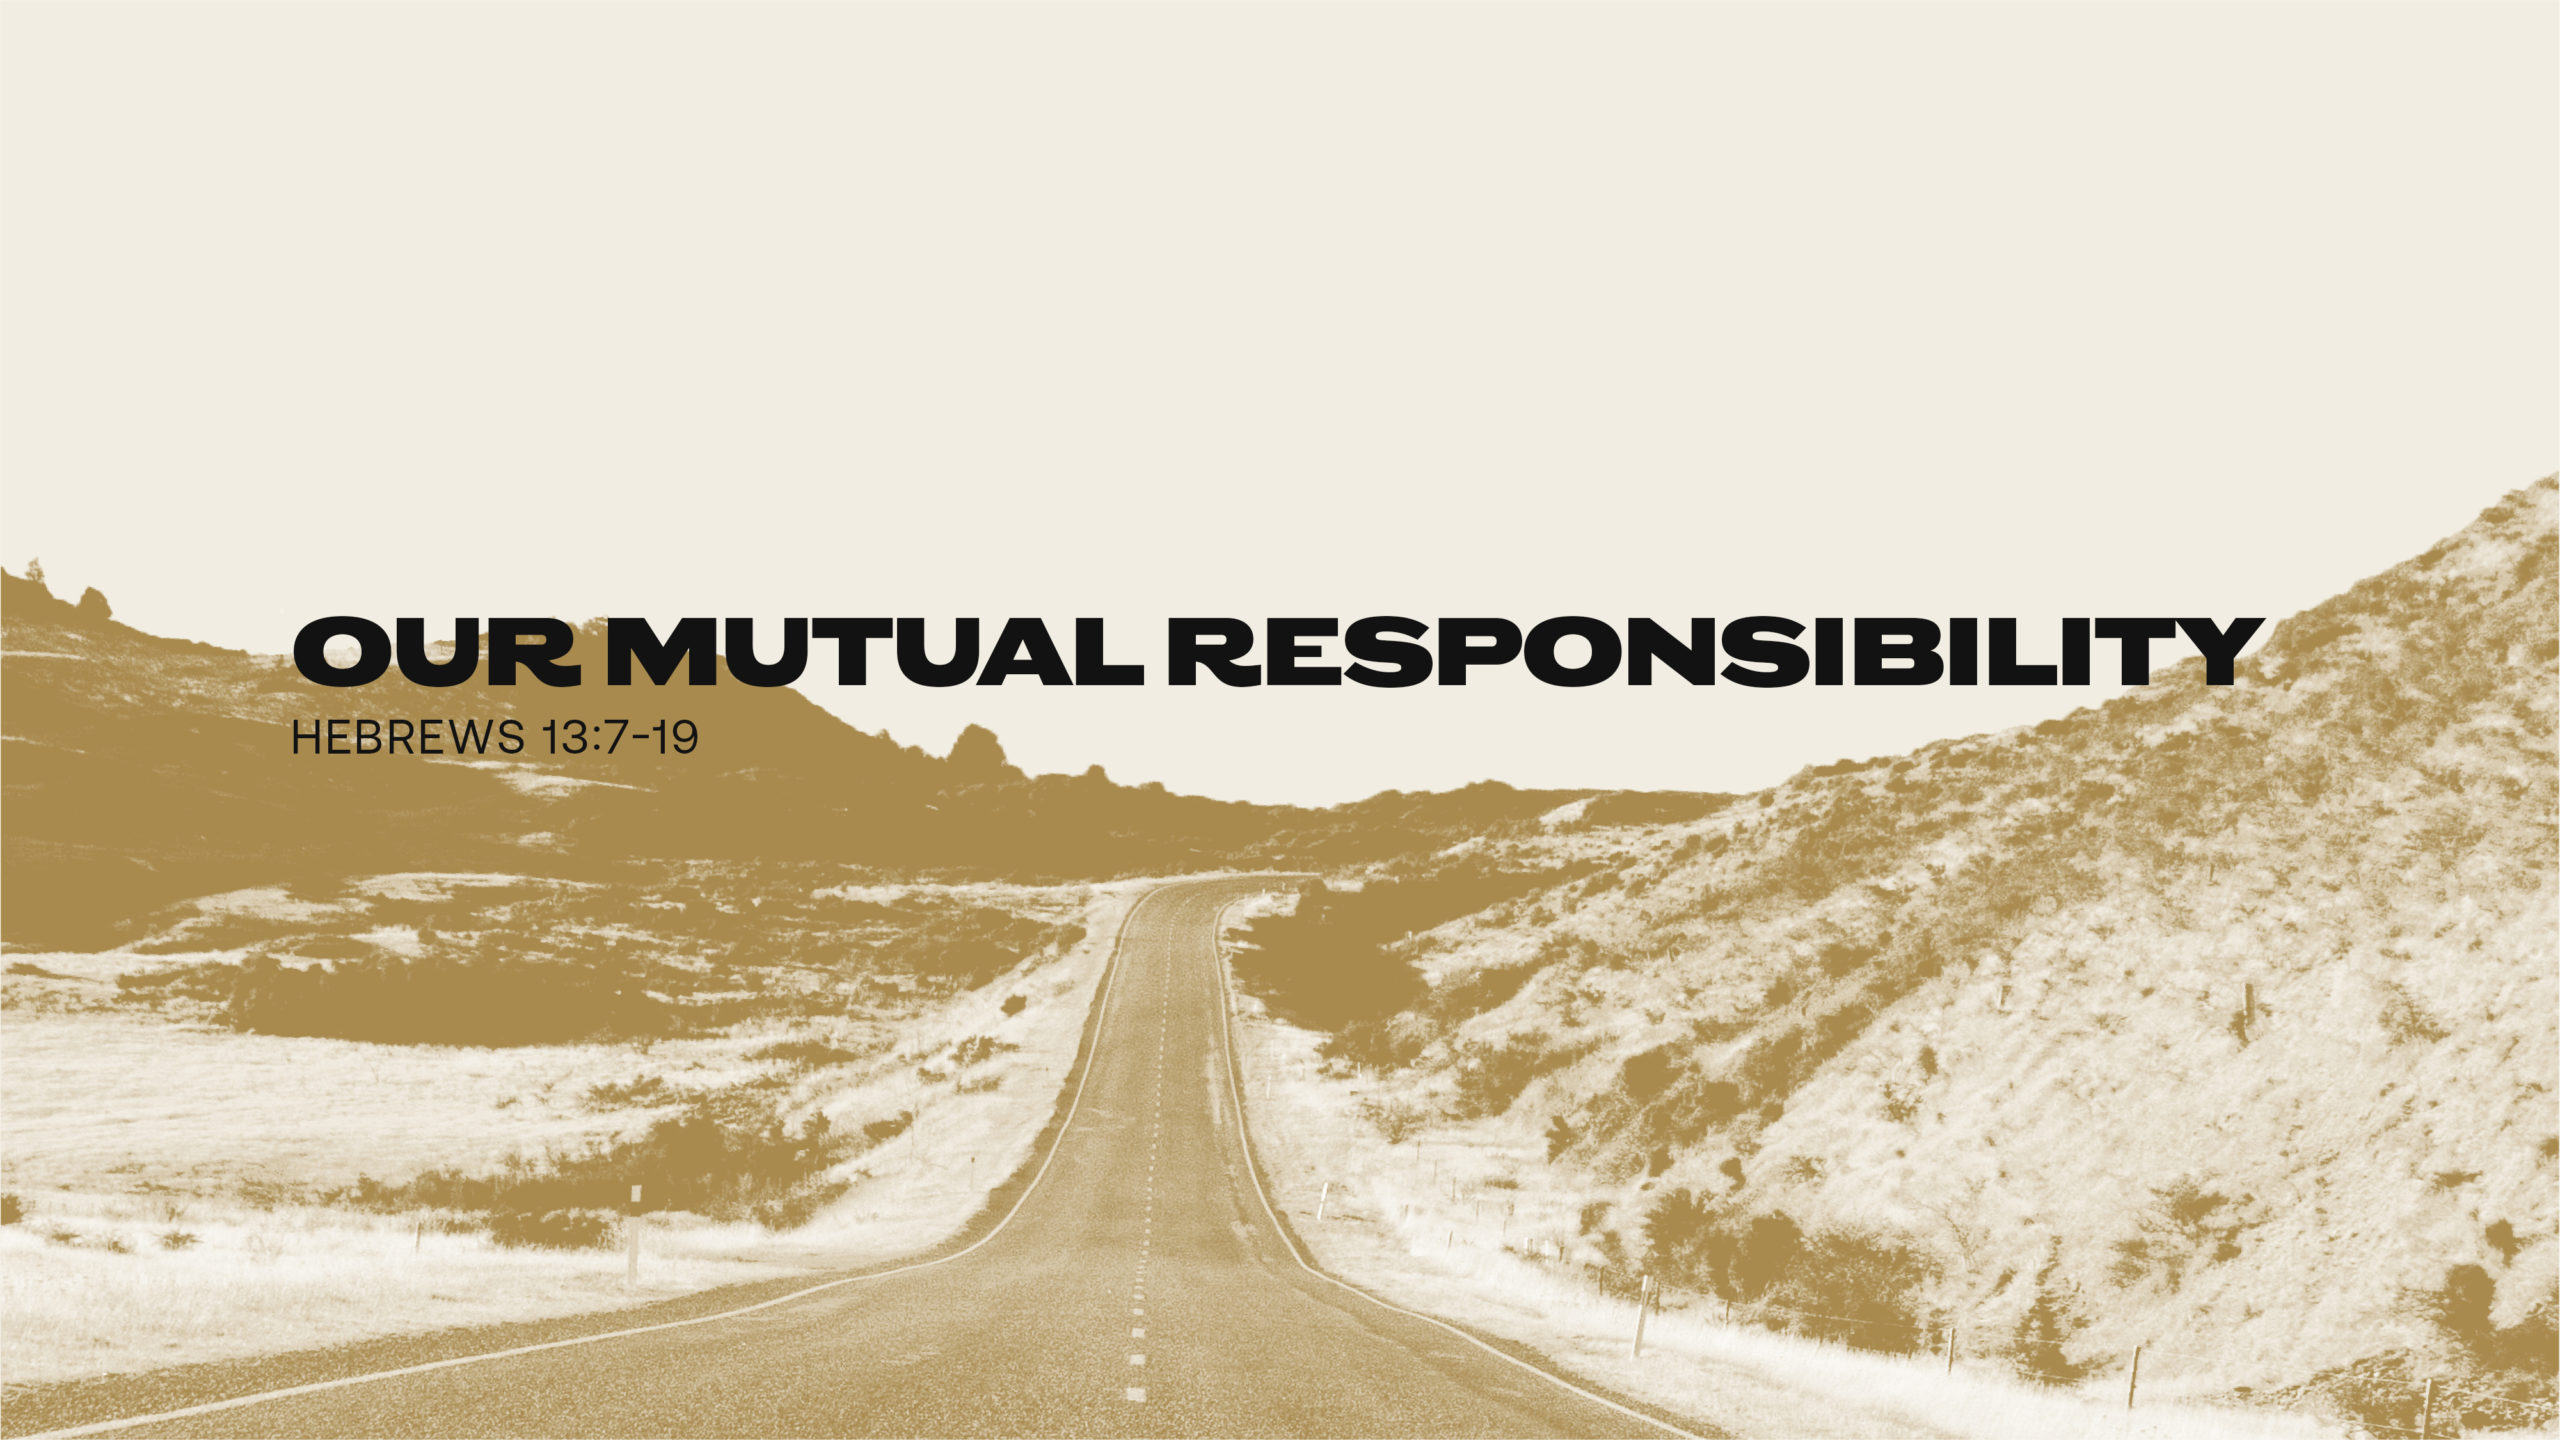 Our Mutual Responsibility